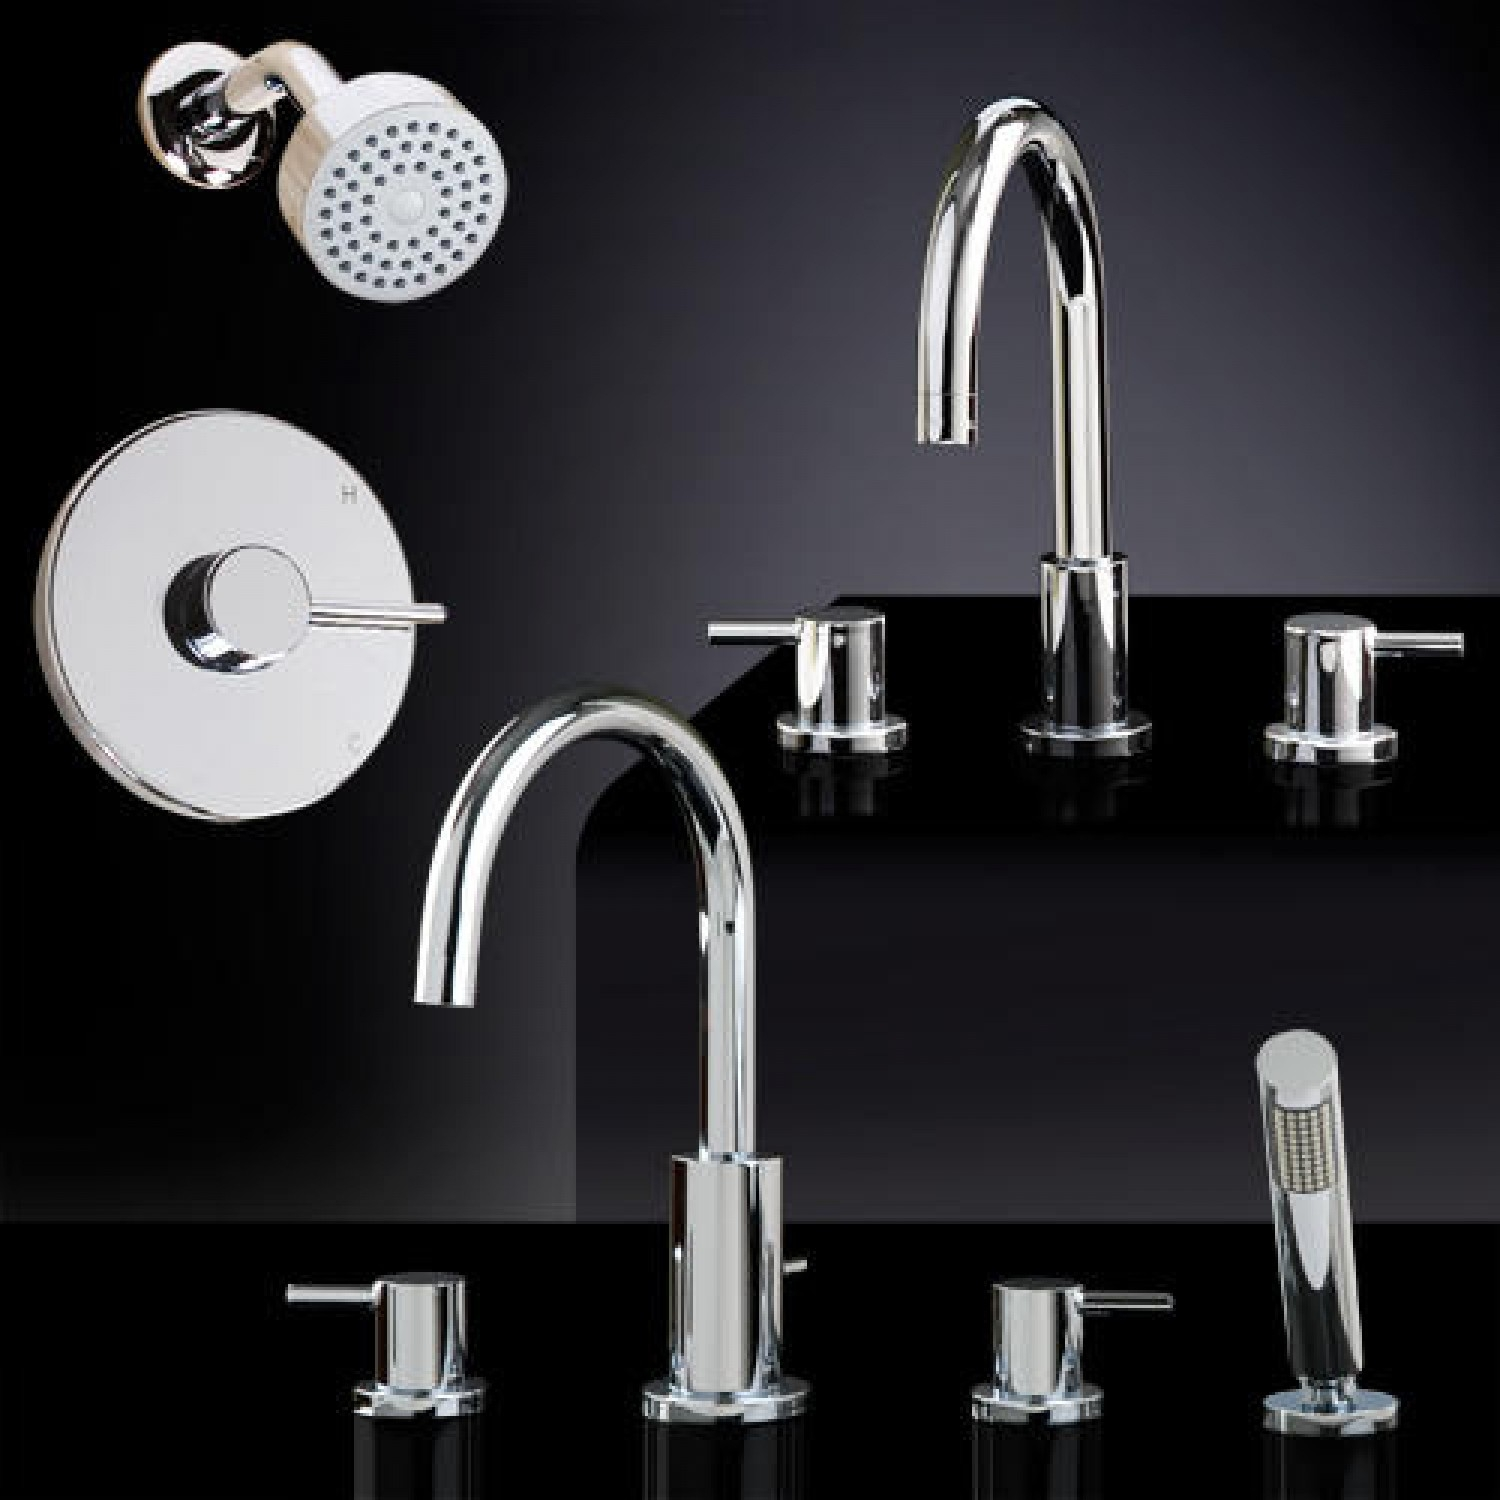 Ideas, bathroom sink and faucet sets bathroom sink and faucet sets rotunda tub shower set 1 with widespread sink faucet bathroom 1500 x 1500  .